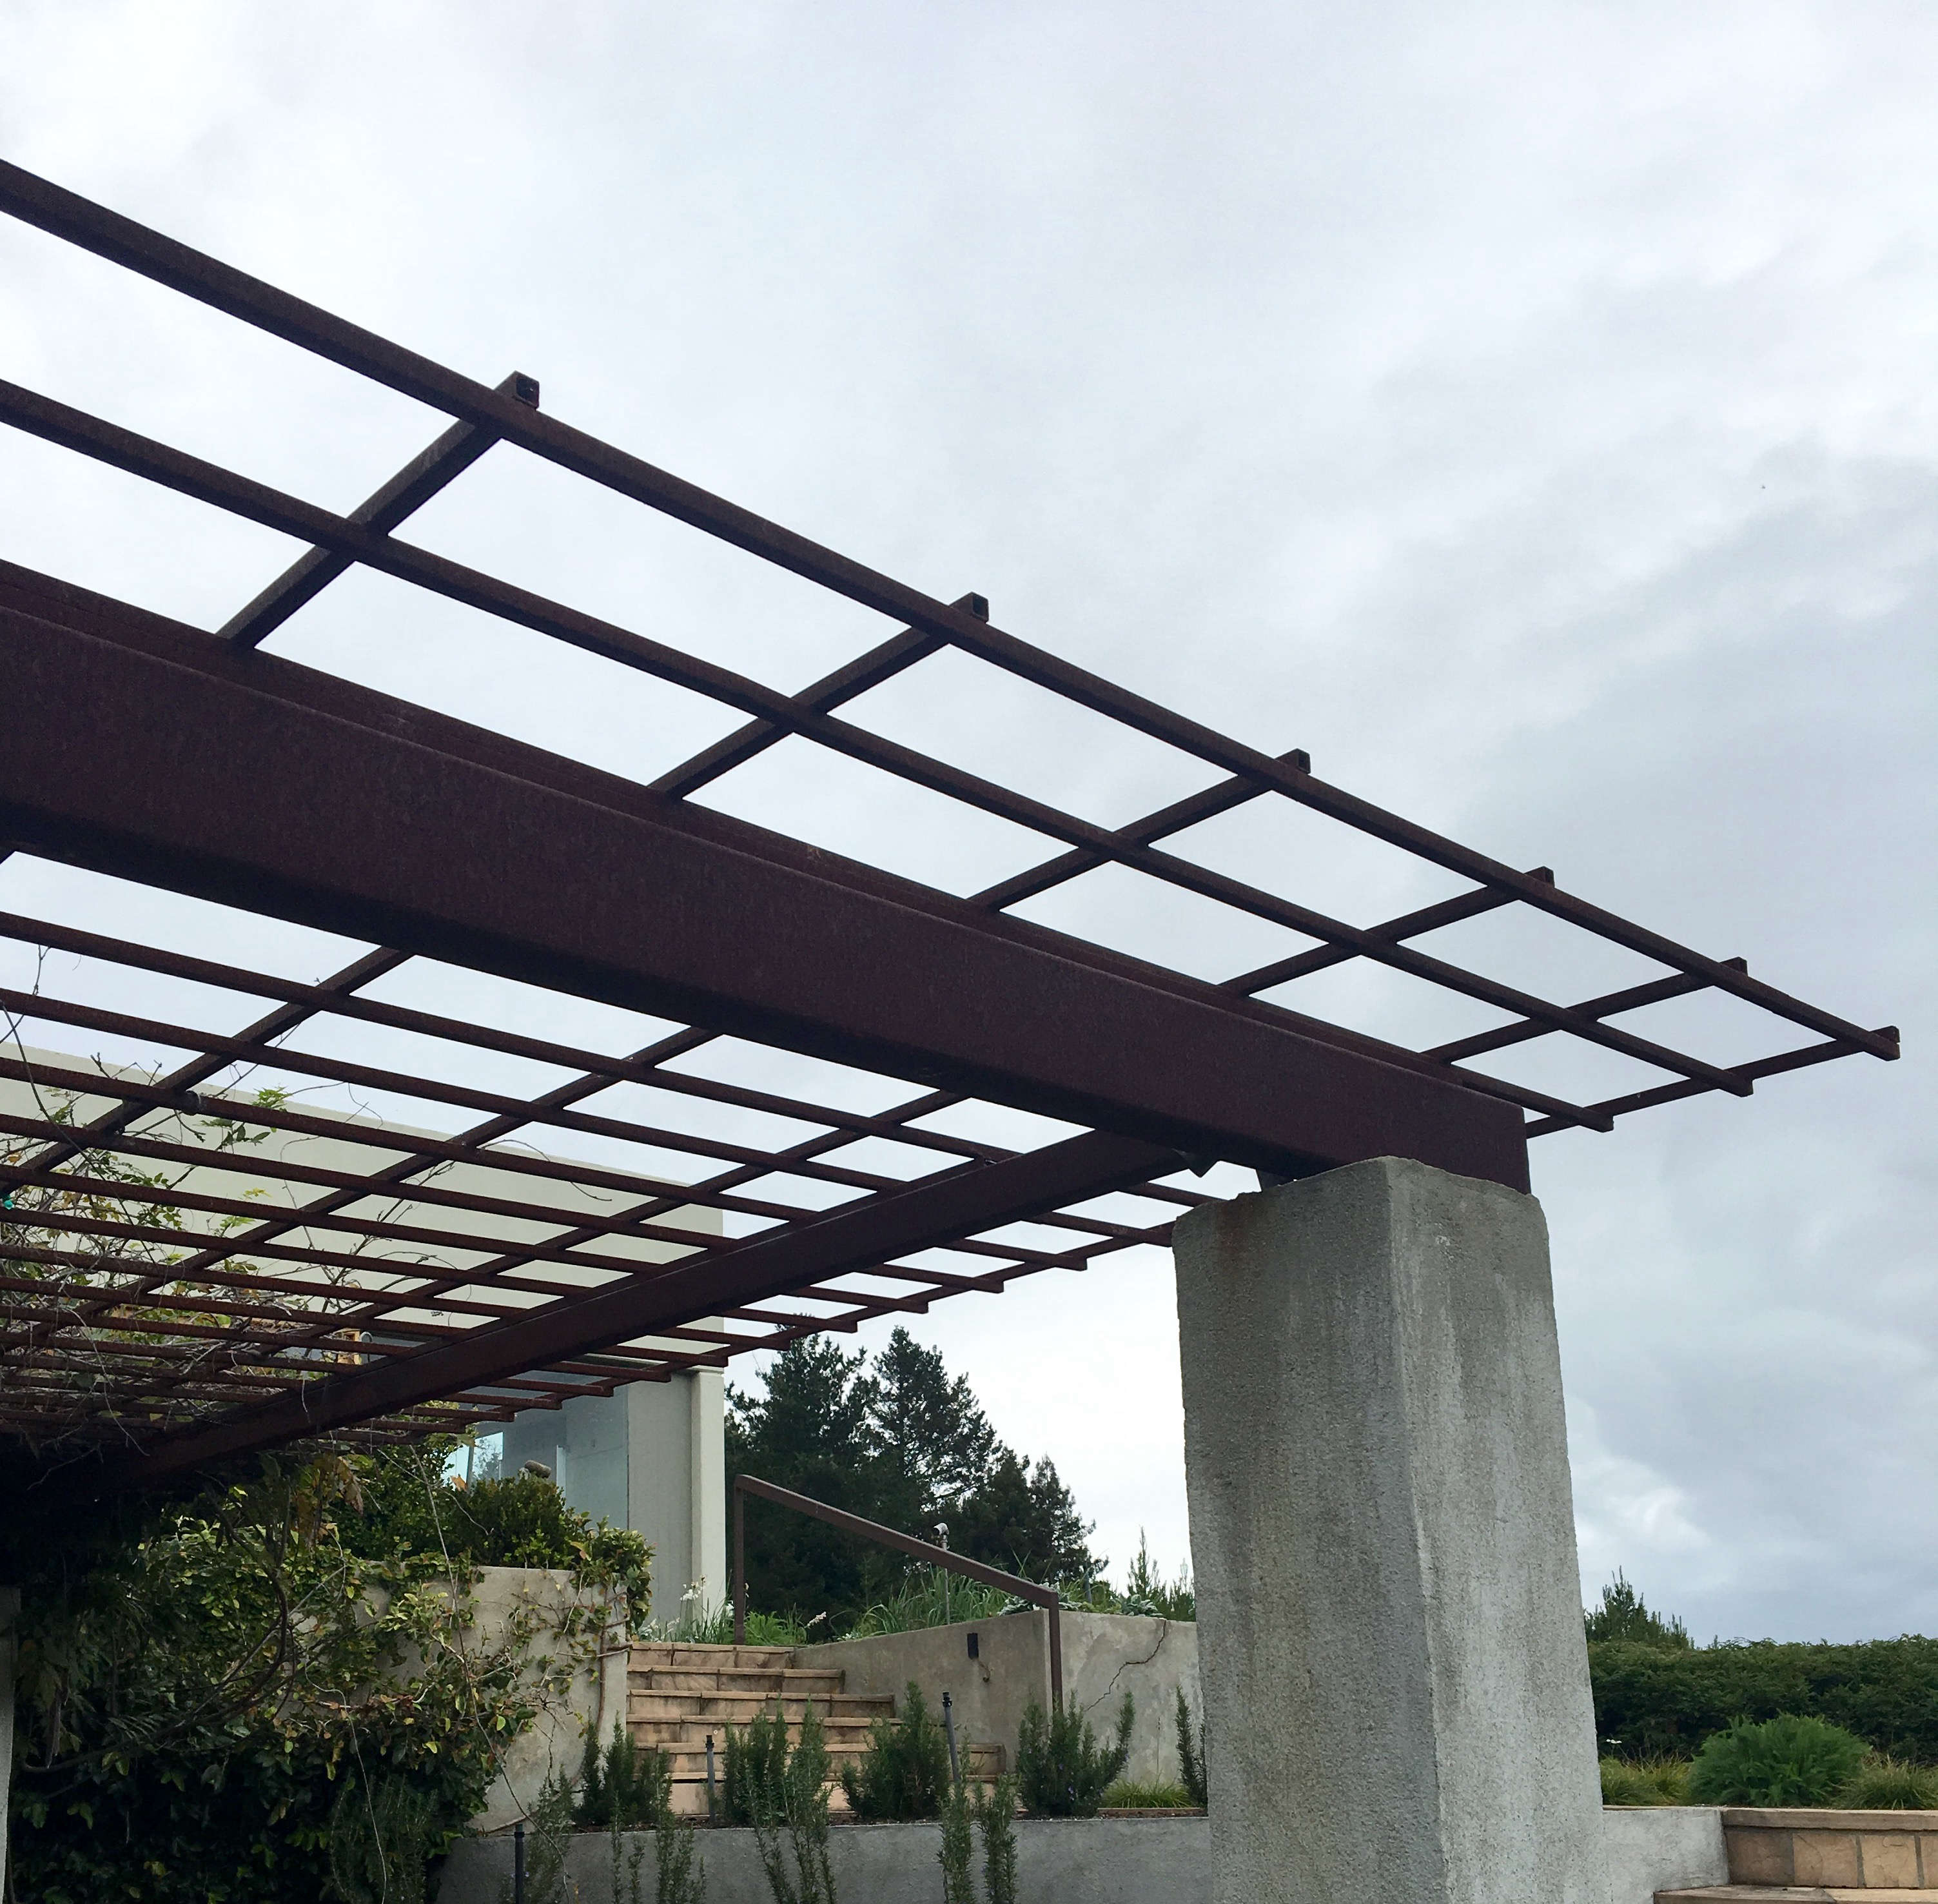 A reclaimed steel pergola with poured in place concrete columns sits atop this Mount Tamalpais property. The exposed site and the dramatic weather patterns have weathered the metal nicely and created a nice contrast to the concrete. Photograph by Kier Holmes.